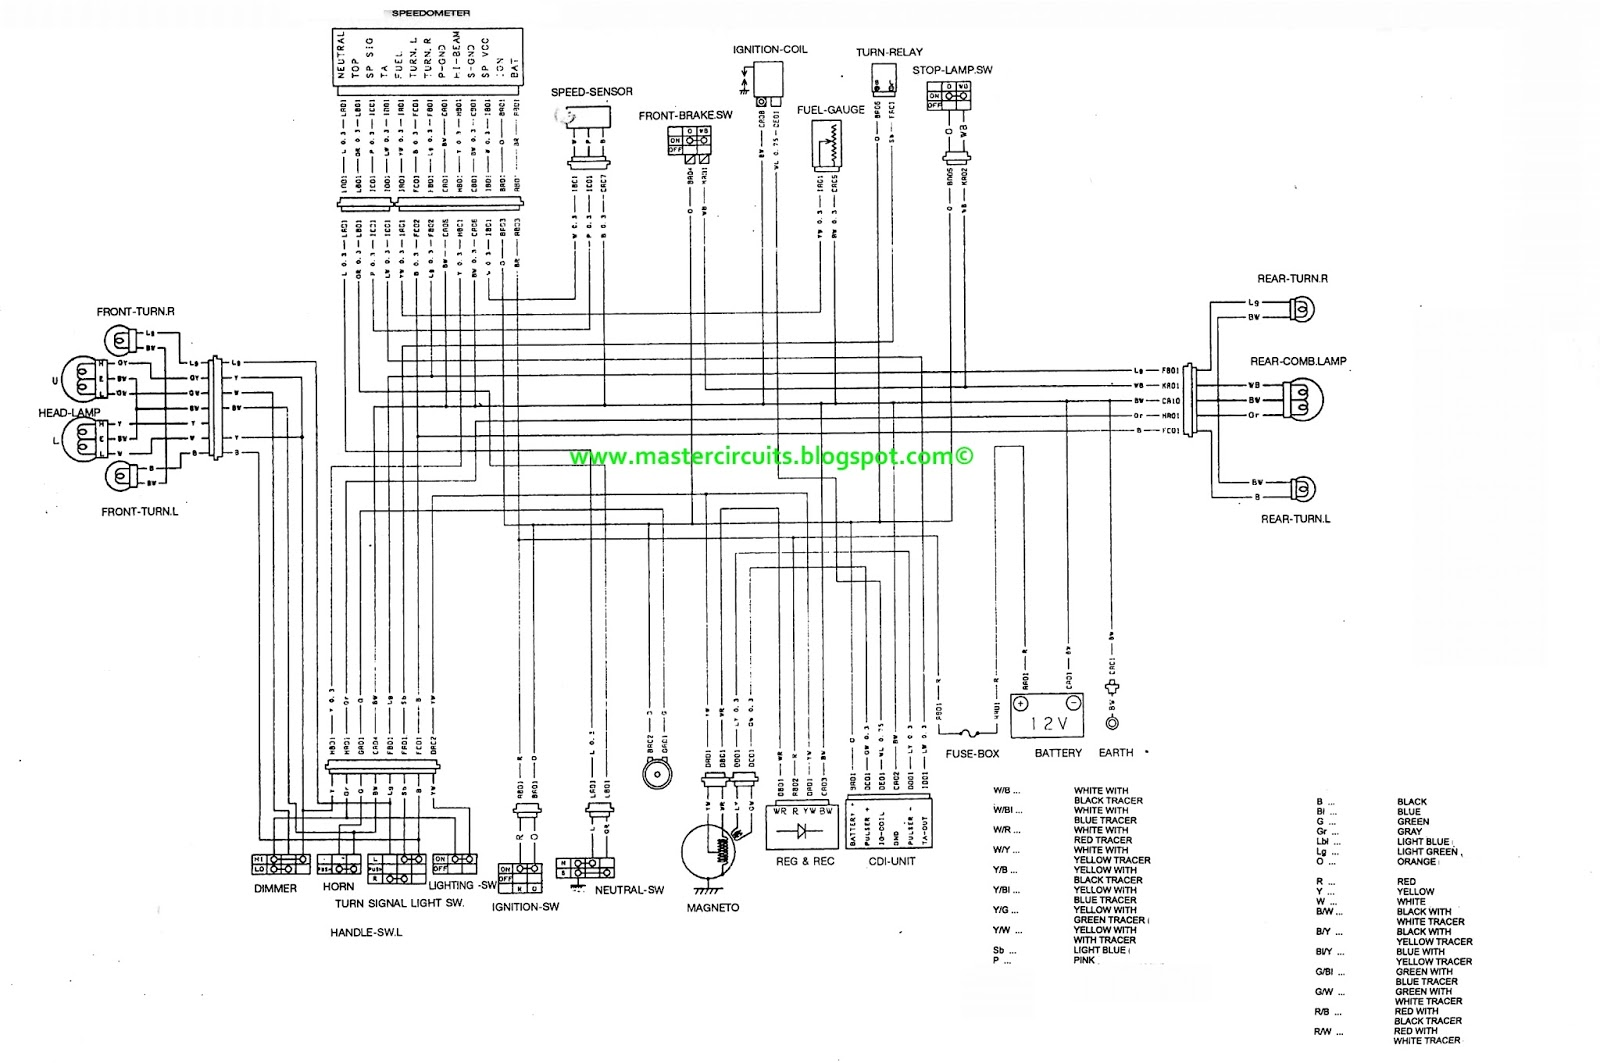 WRG-4948] Kawasaki Hd3 125 Wiring Diagram on